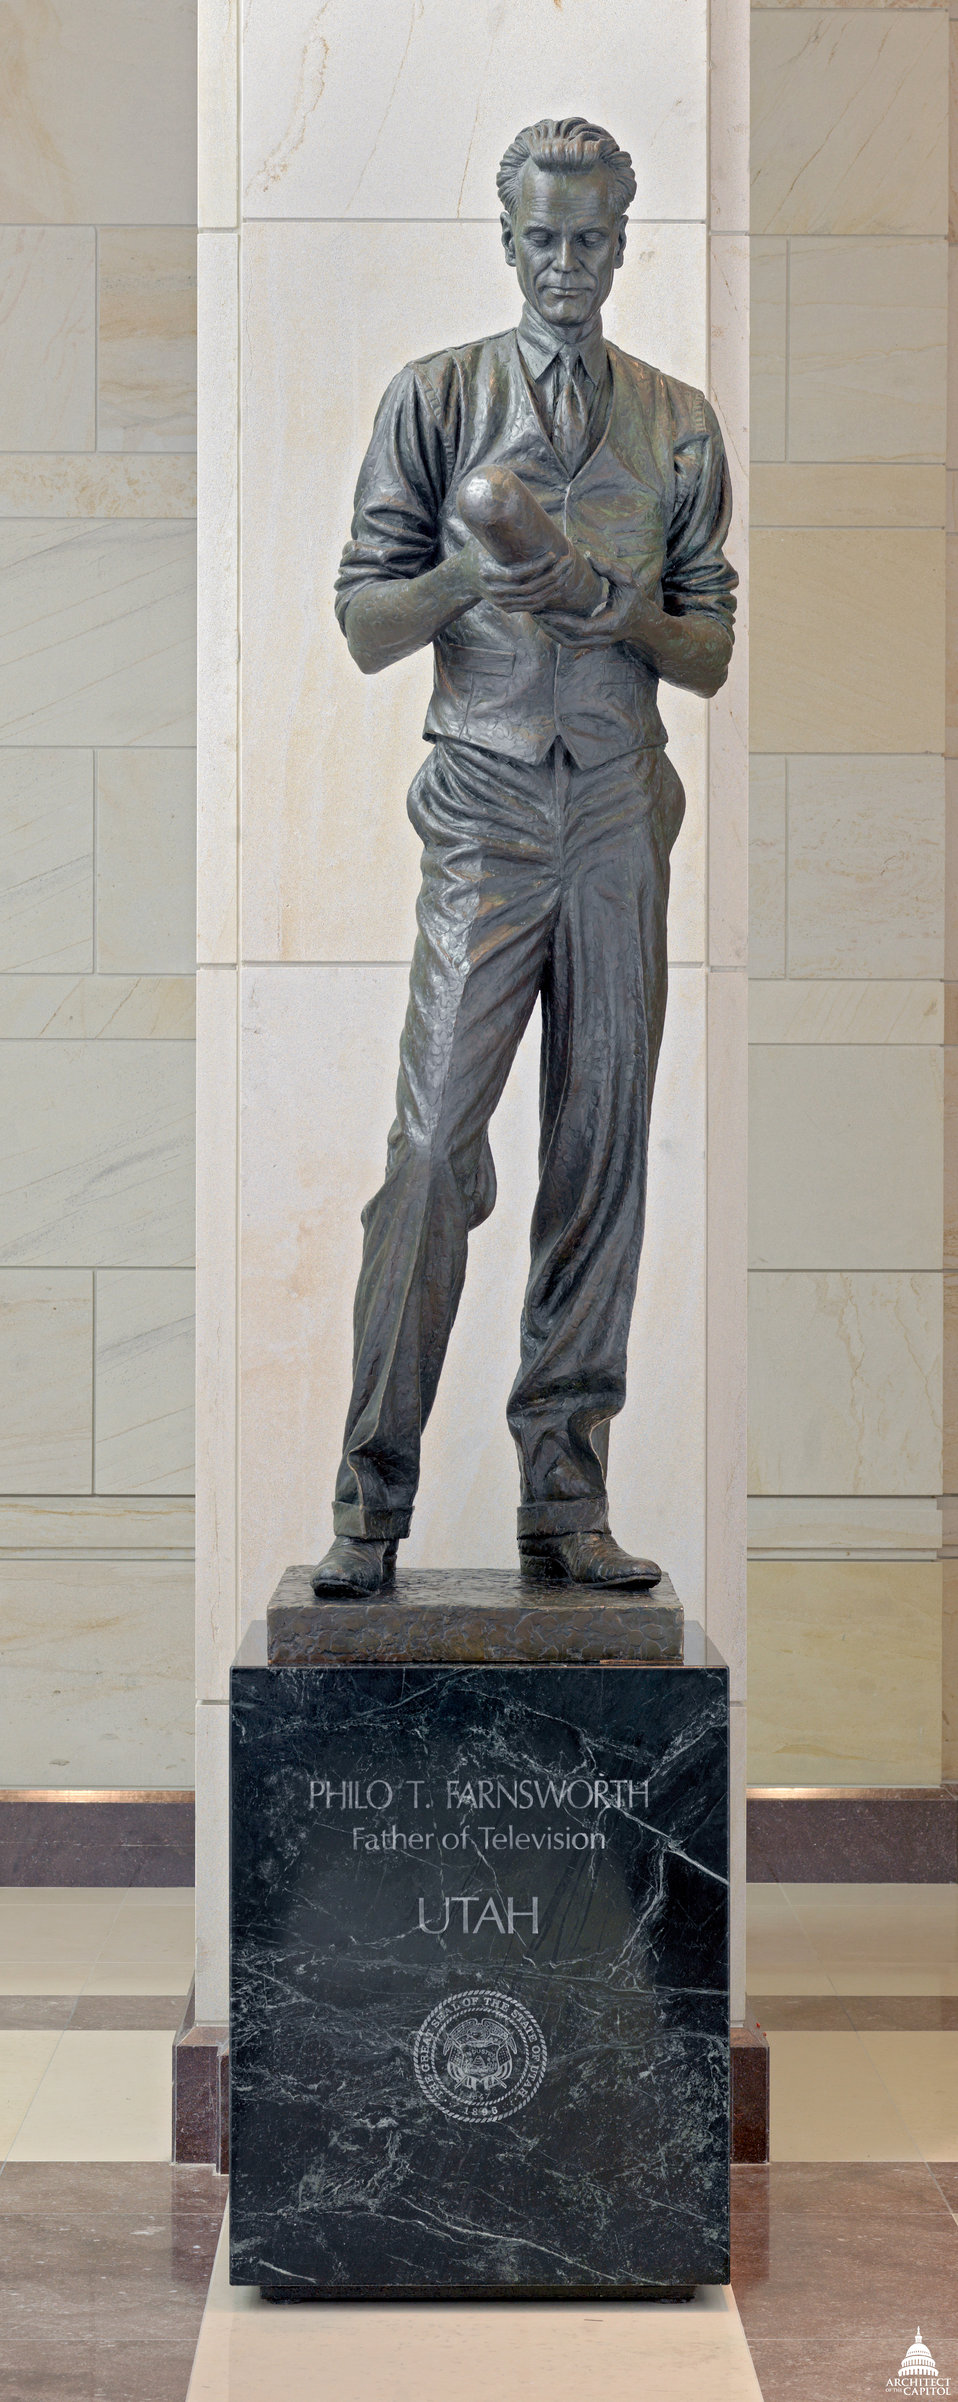 Philo T. Farnsworth Statue